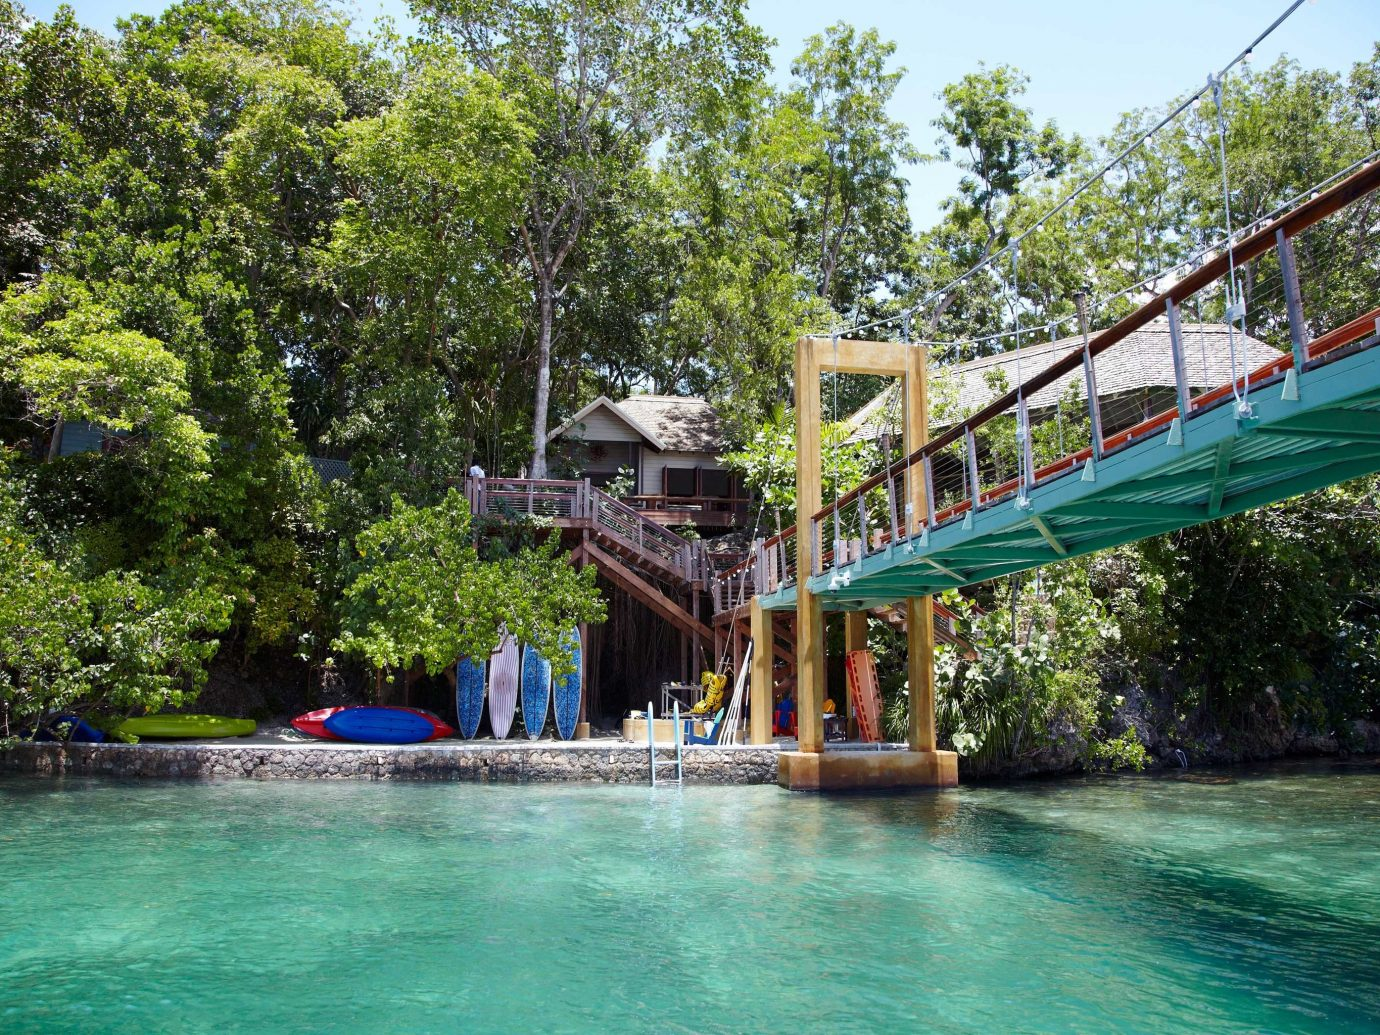 Grounds Hotels Luxury Outdoor Activities Resort Romantic Tropical Waterfront tree outdoor water leisure Boat amusement park Water park swimming pool River park Lake bridge swimming surrounded